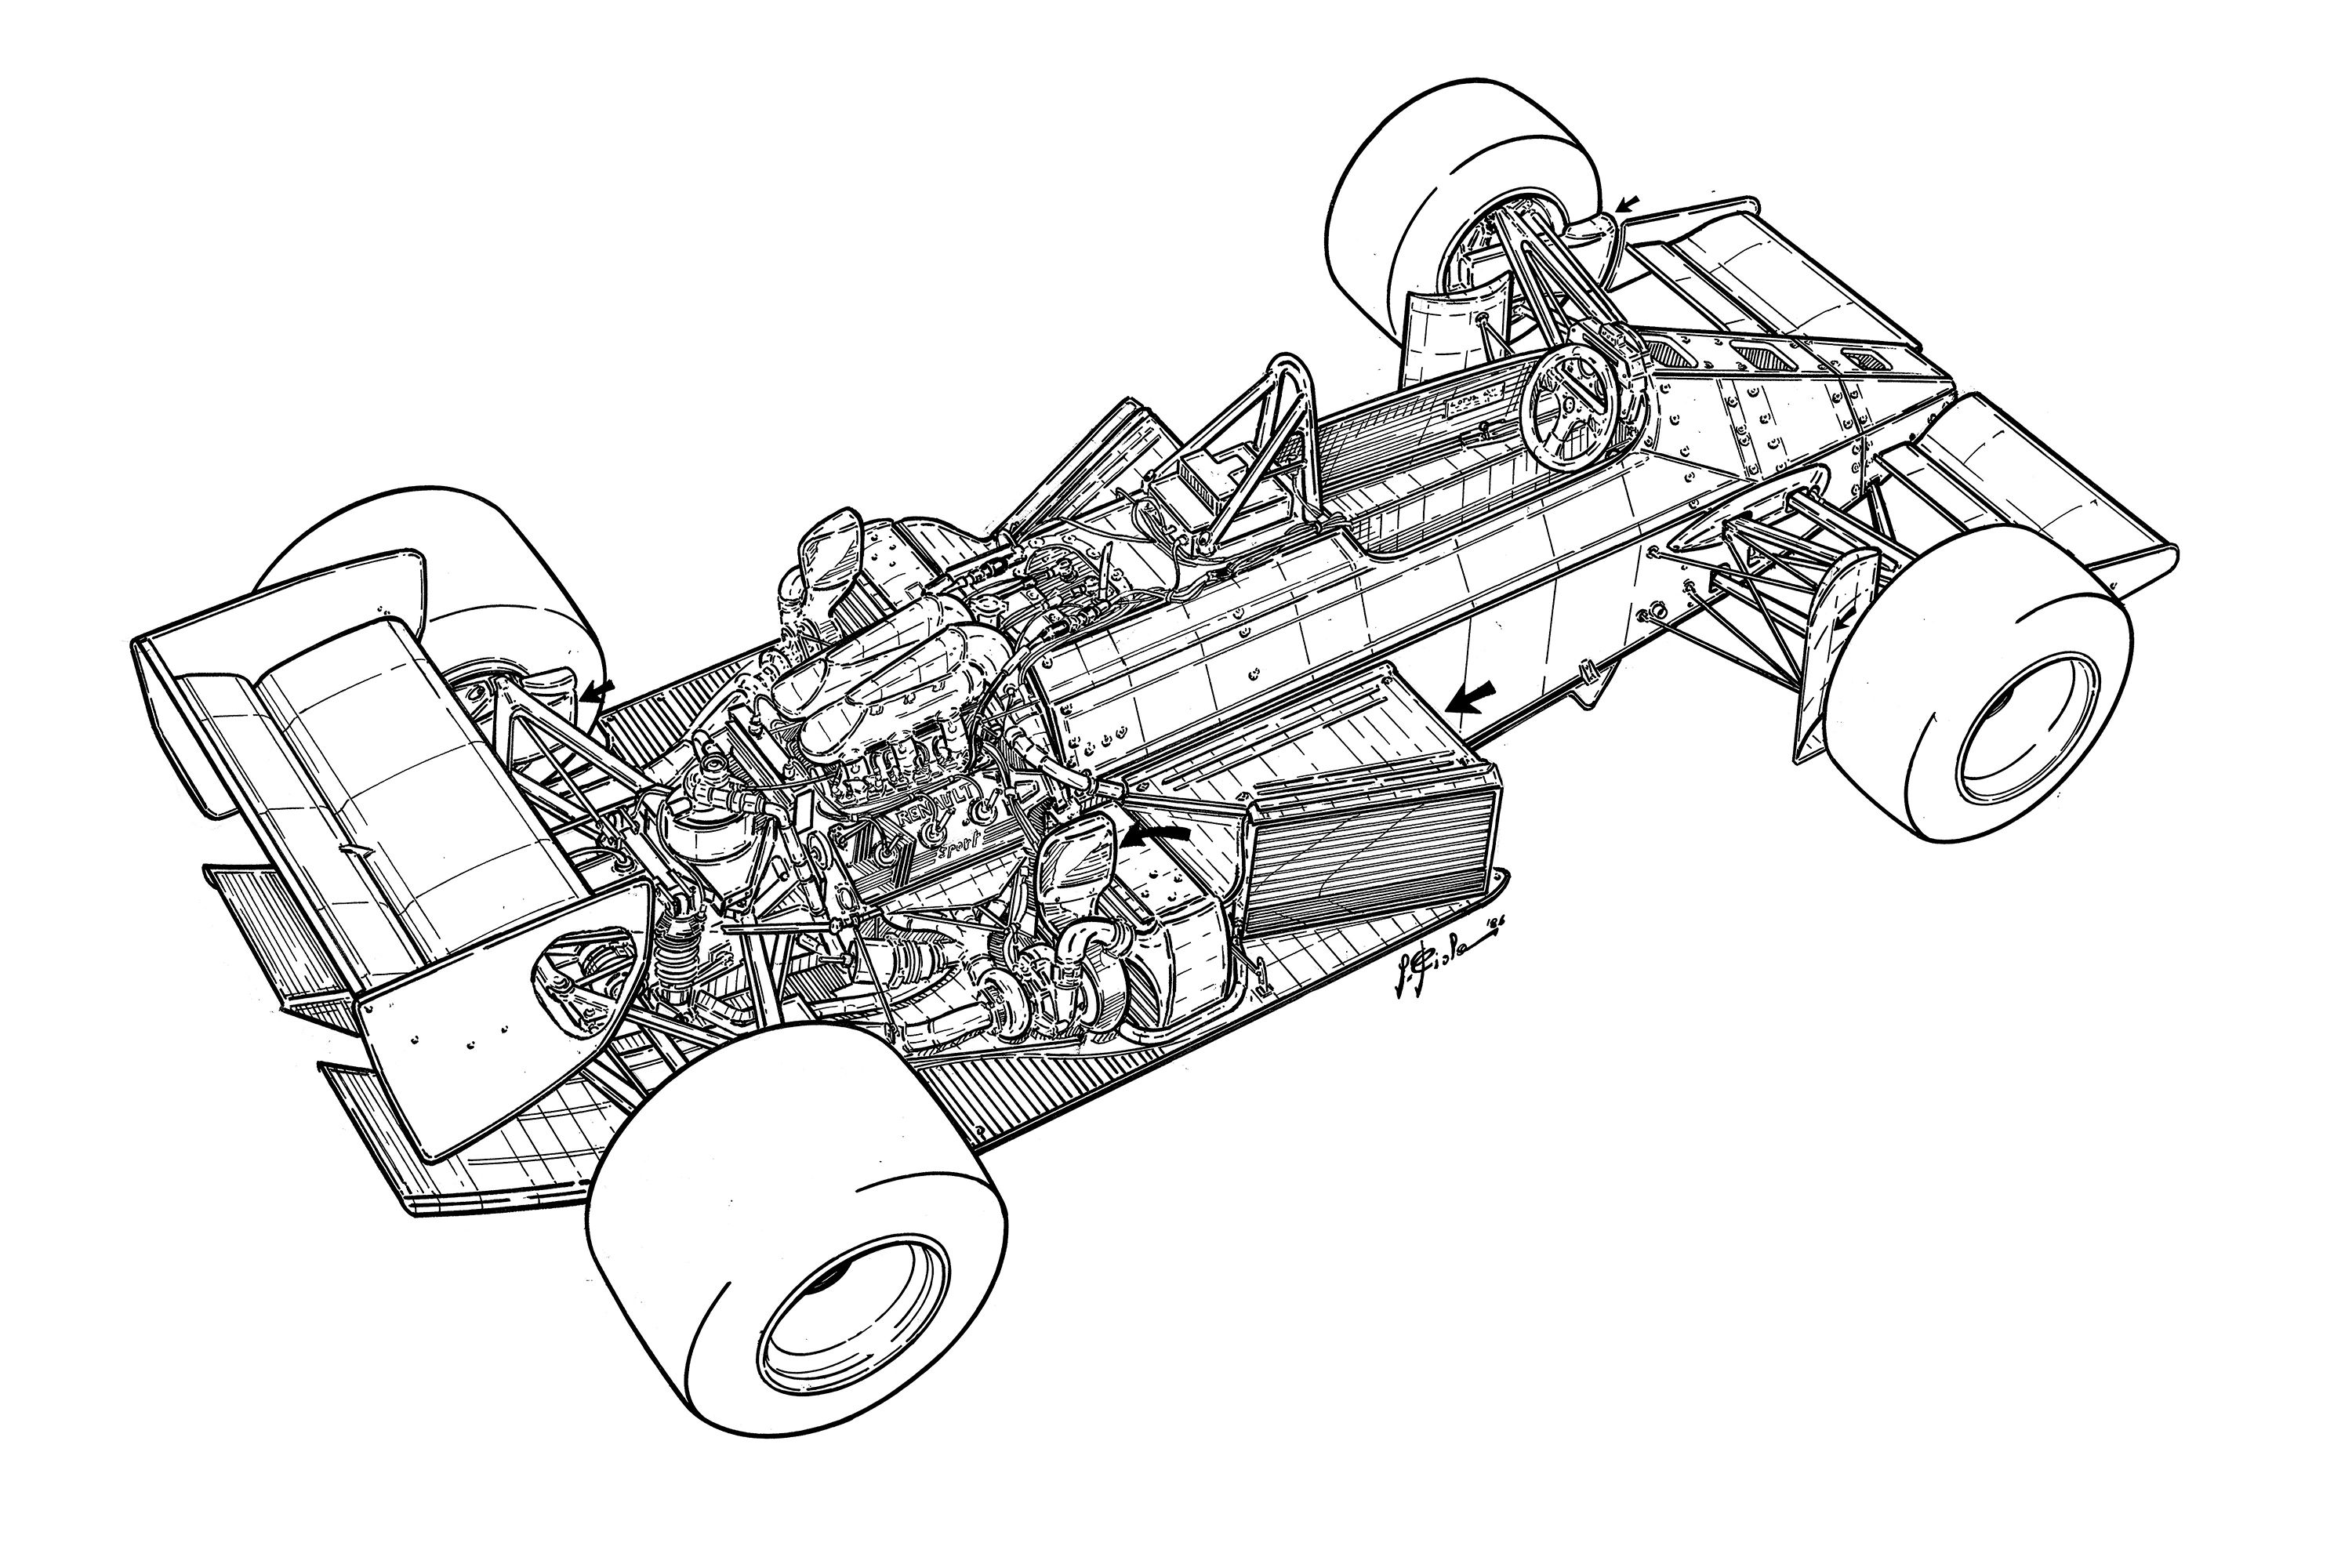 The Lotus 98t Was The Car That Team Lotus Ran On The